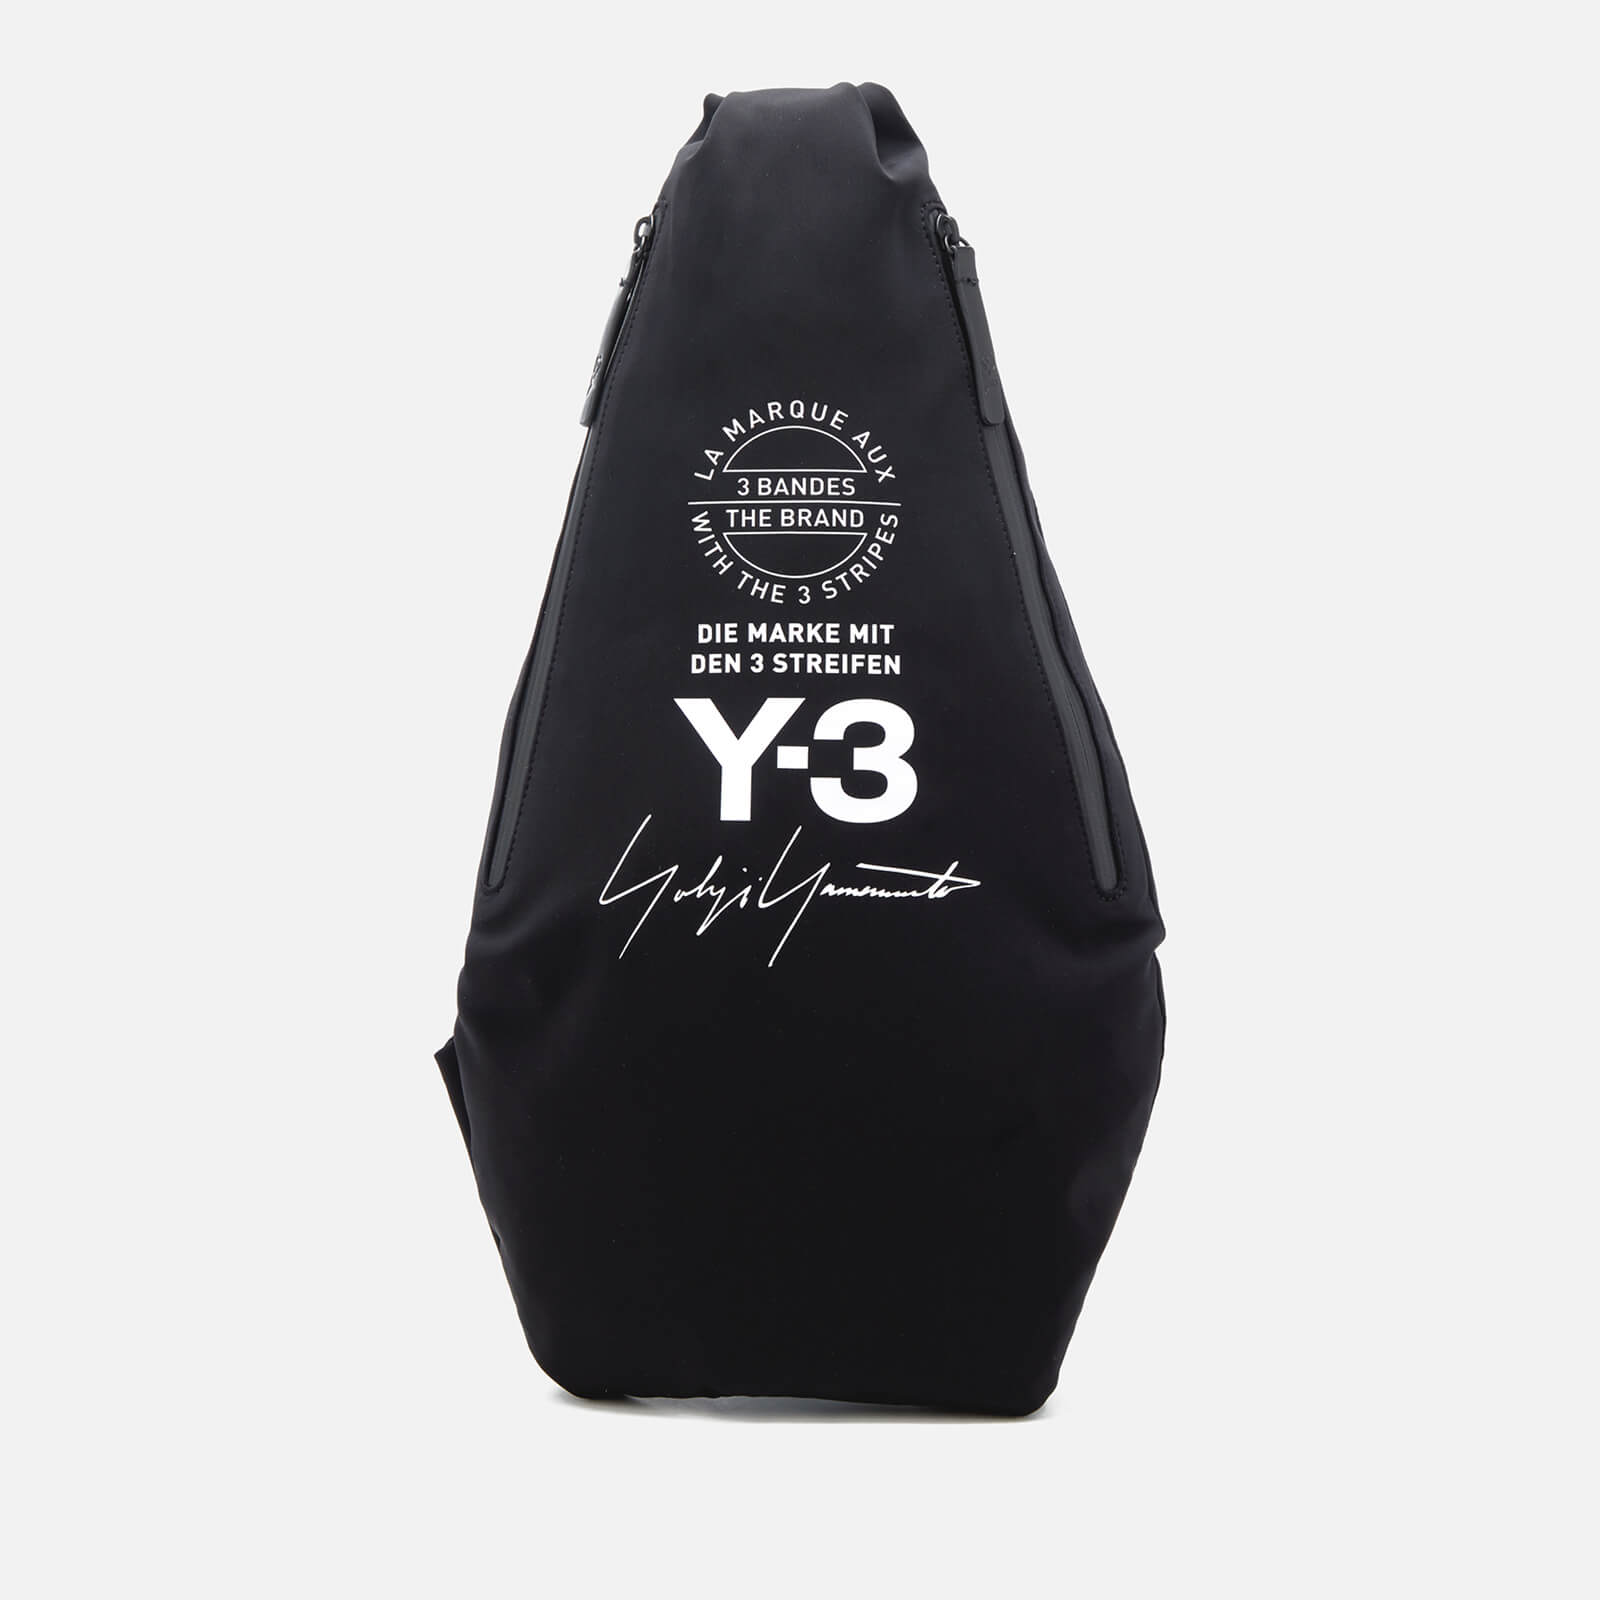 805d8dd18 Y-3 Yohji Messenger Bag - Black - Free UK Delivery over £50